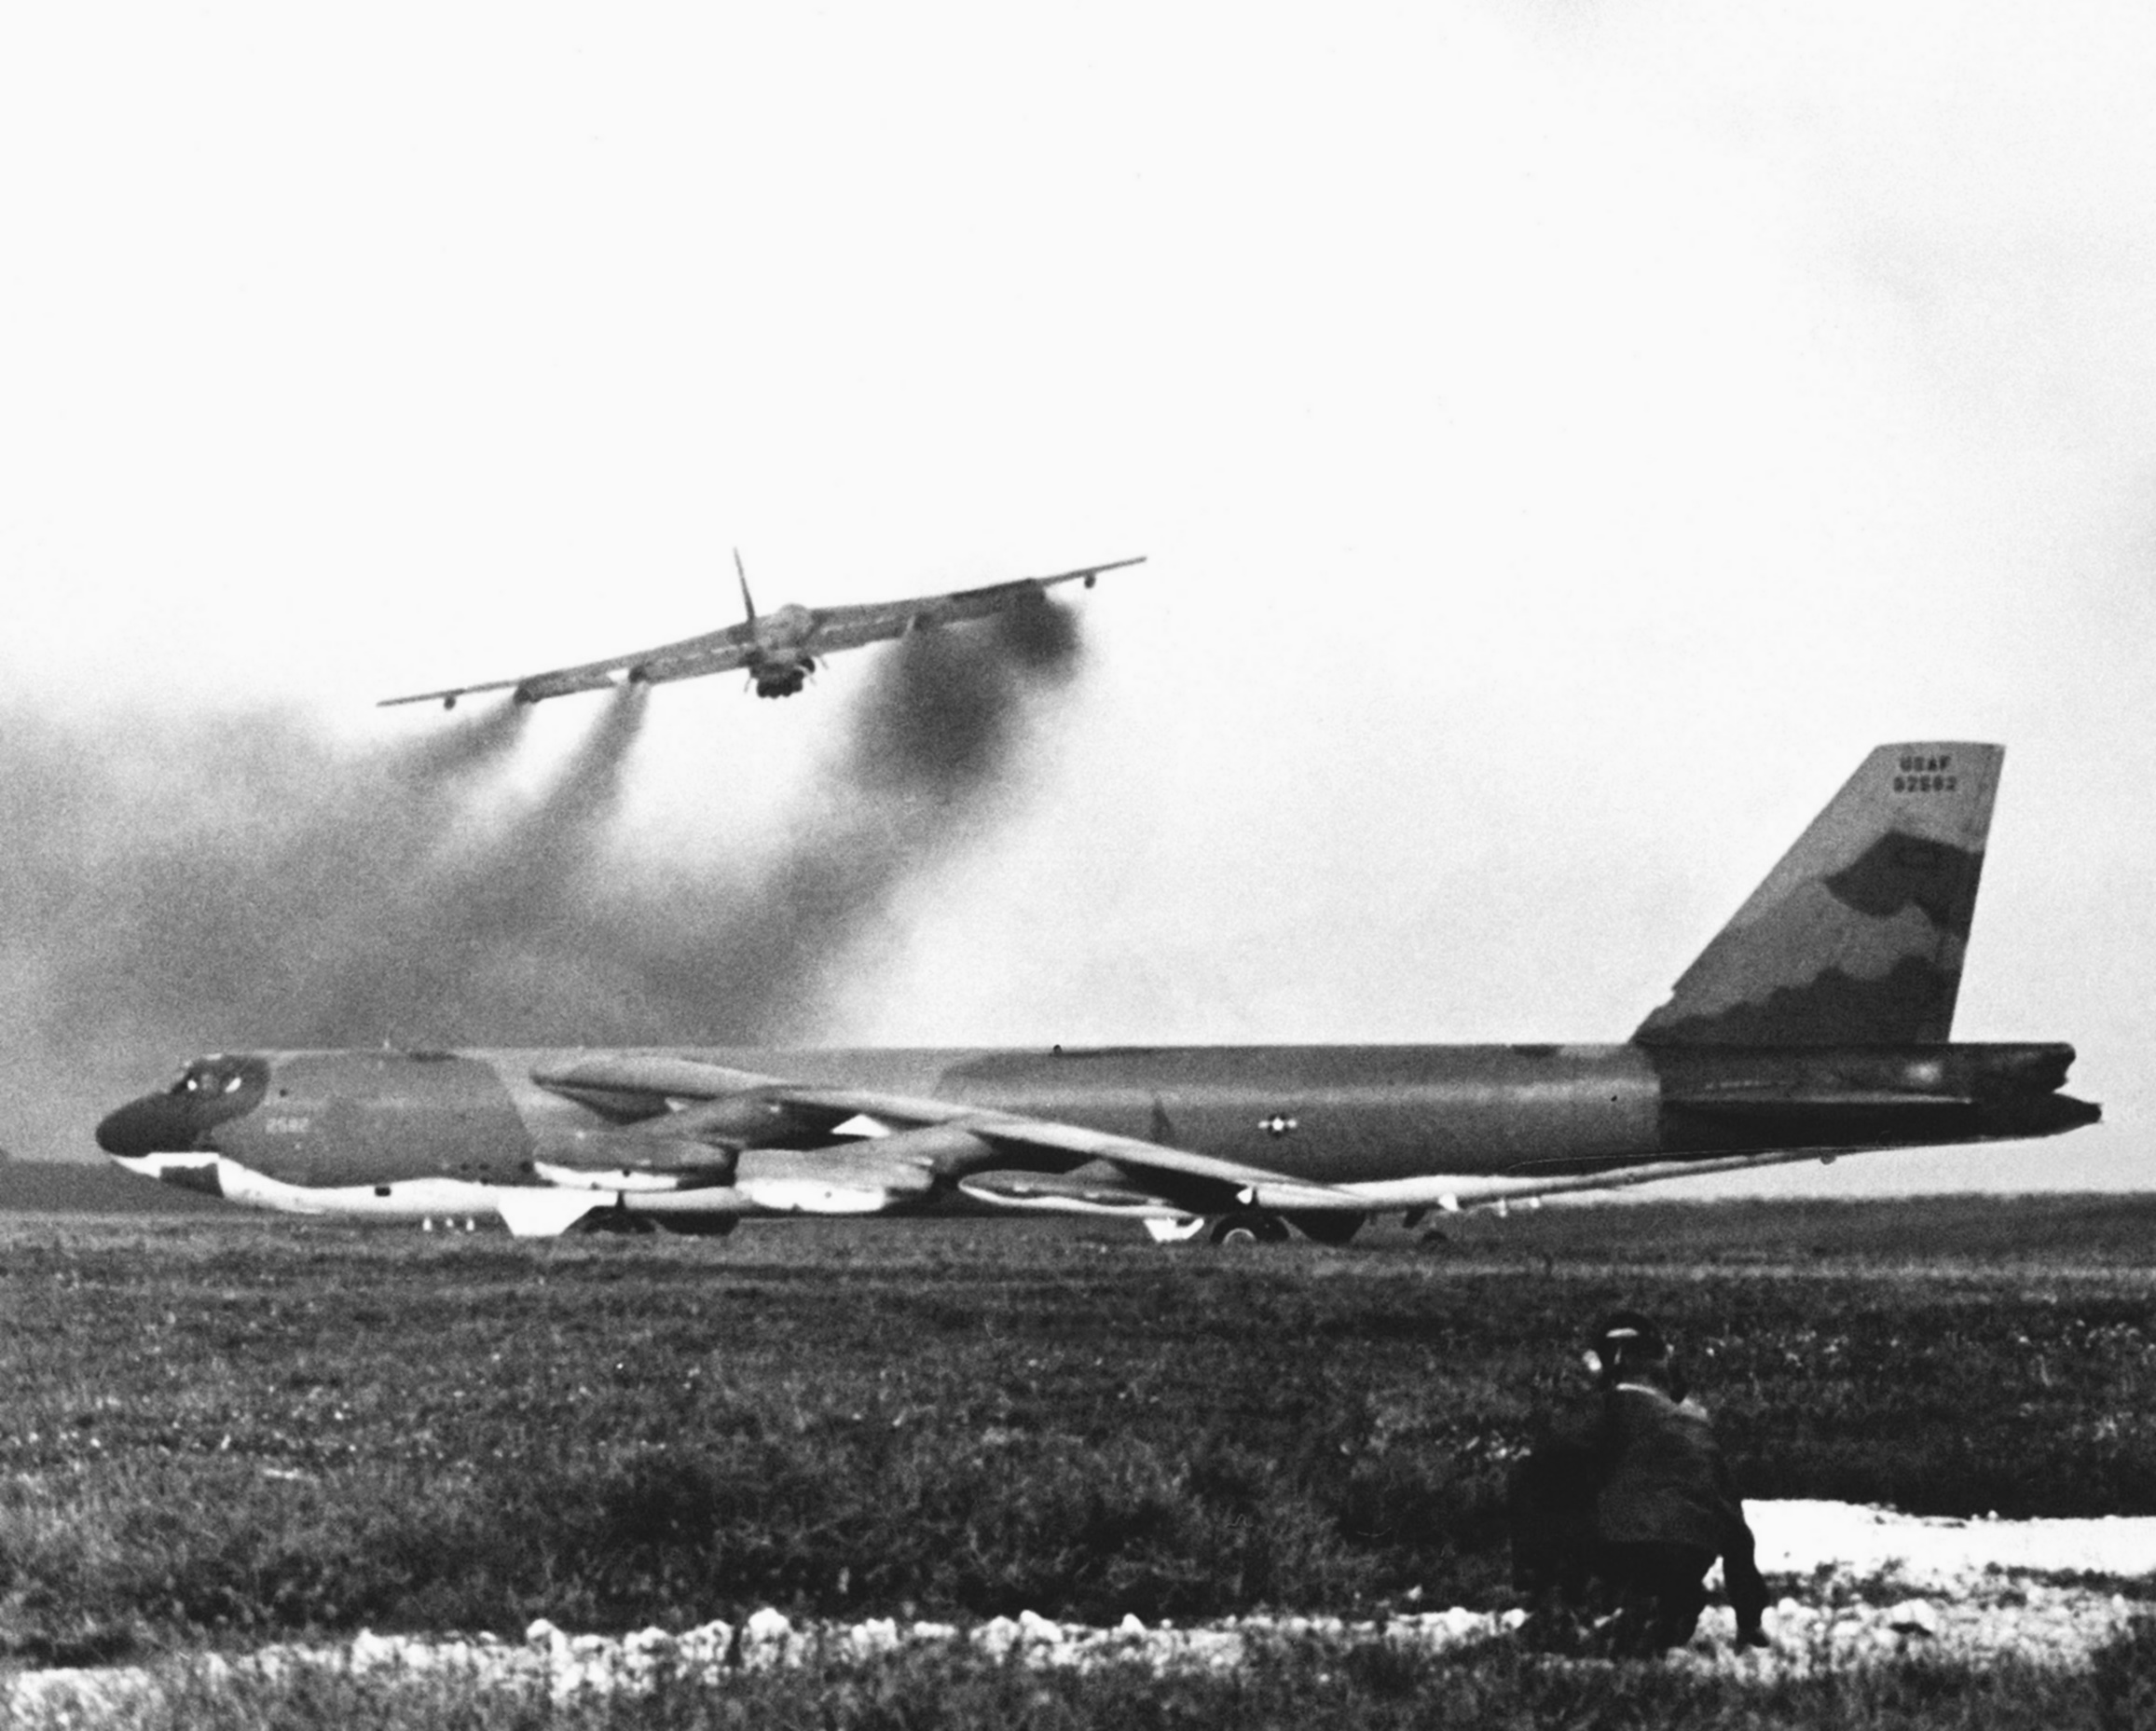 operation linebacker essay Operation linebacker was the codename of a us seventh air force and us navy task force 77 air interdiction campaign conducted against the democratic republic of vietnam (north vietnam) from 9 may to 23 october 1972, during the vietnam war.